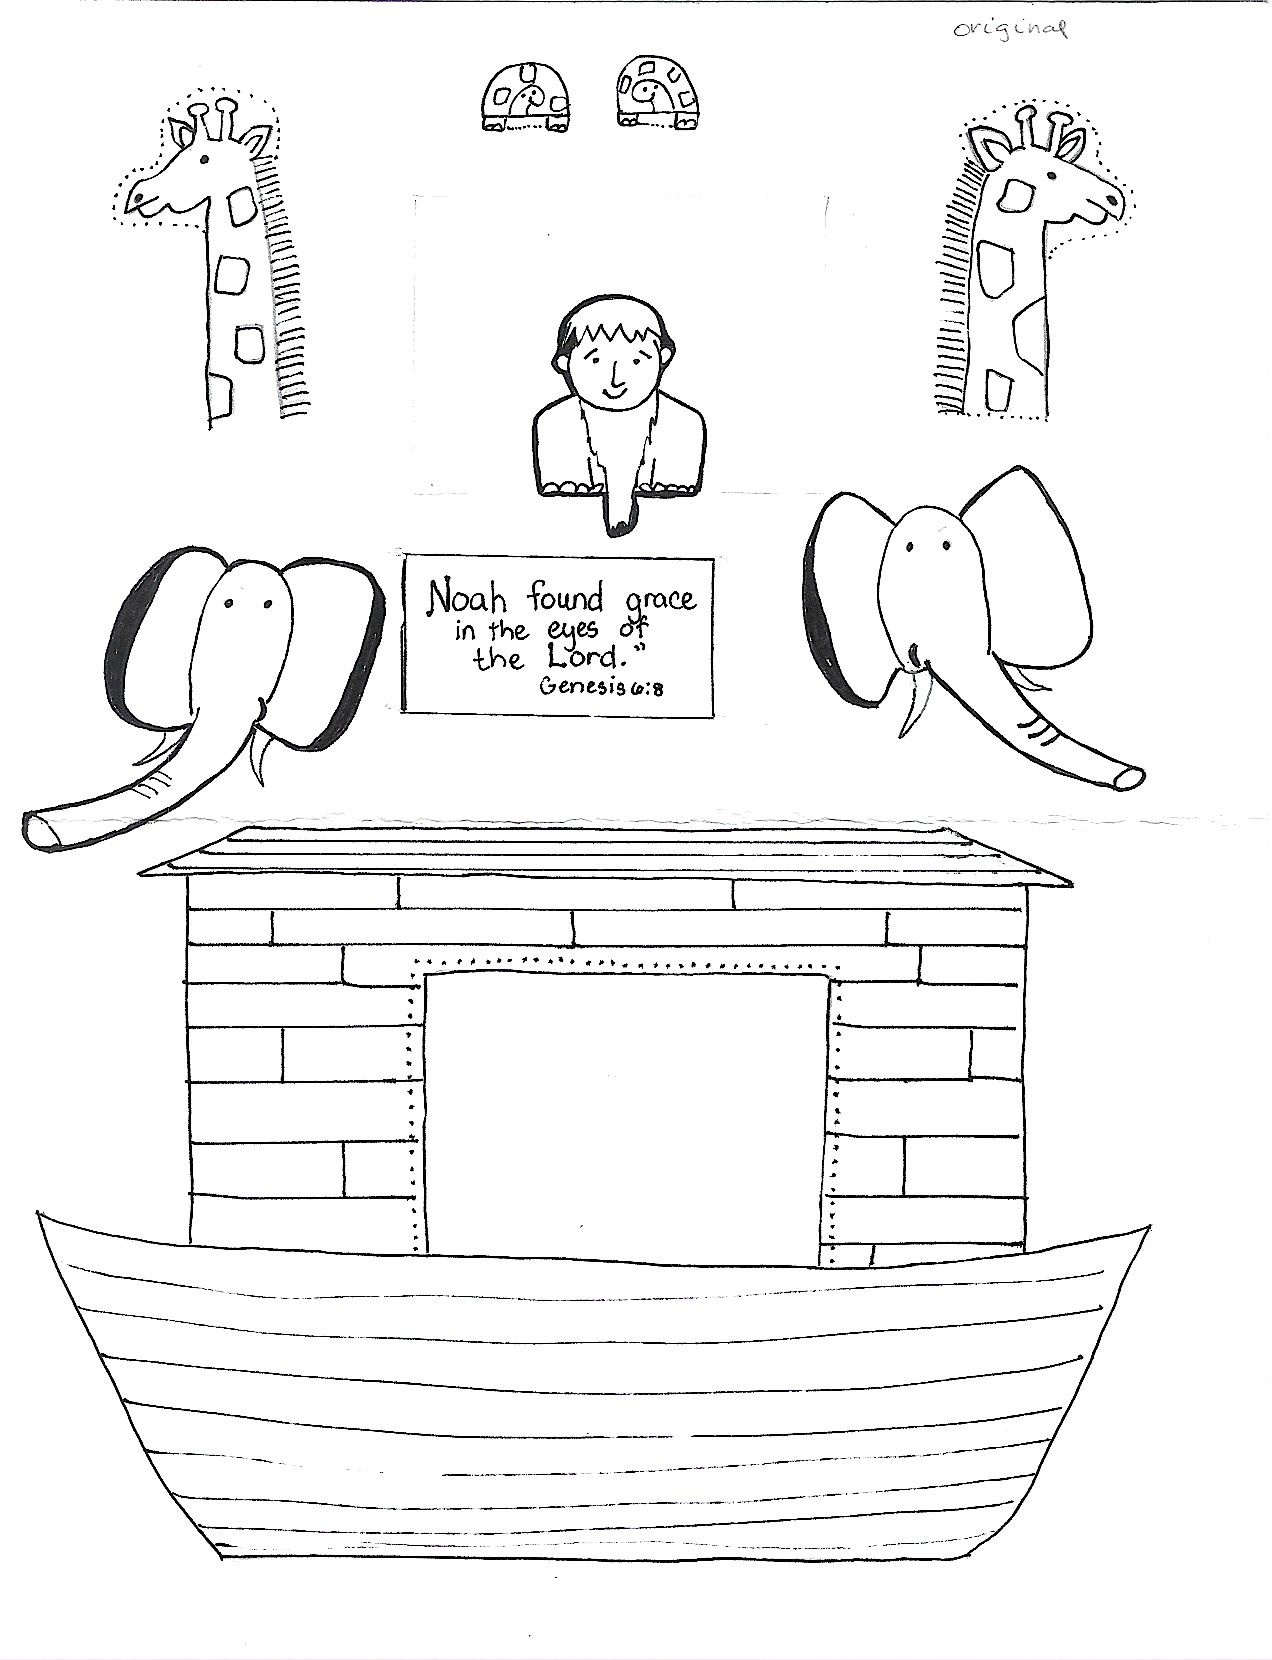 Fall Free Printable Bible Lessons Adem And Eve | The Flood Worksheet - Free Noah's Ark Printables